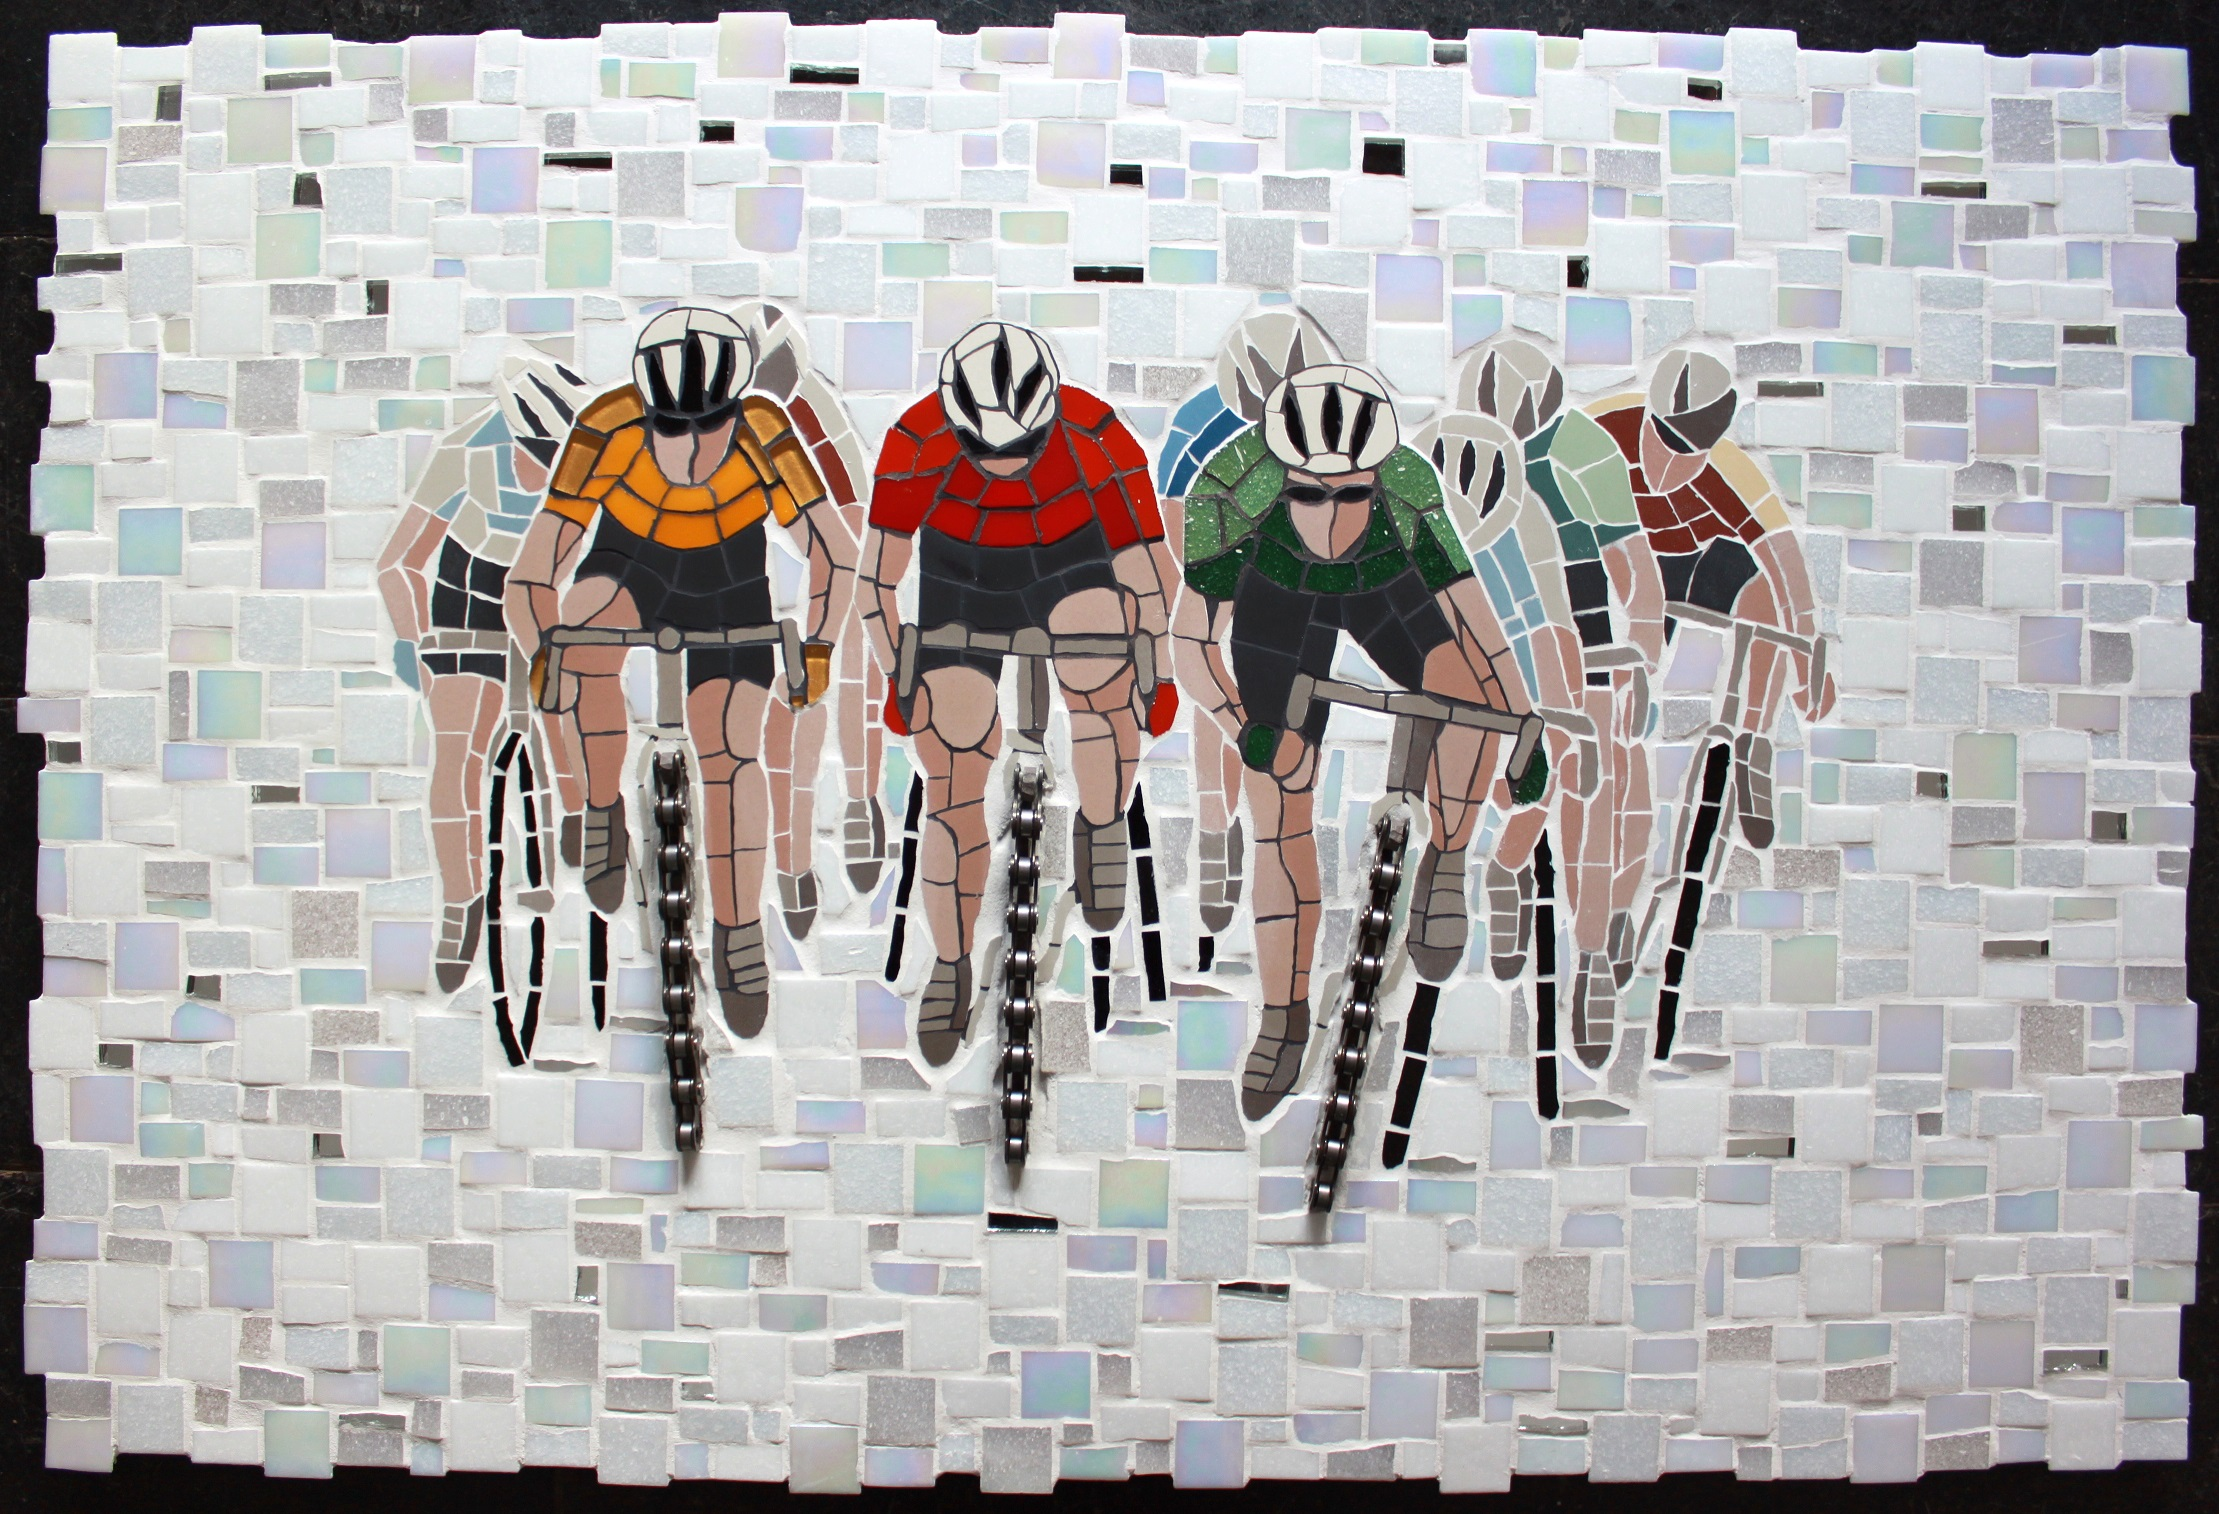 Cyclists on the move - using tradiitonal mosaic materals and bike chain